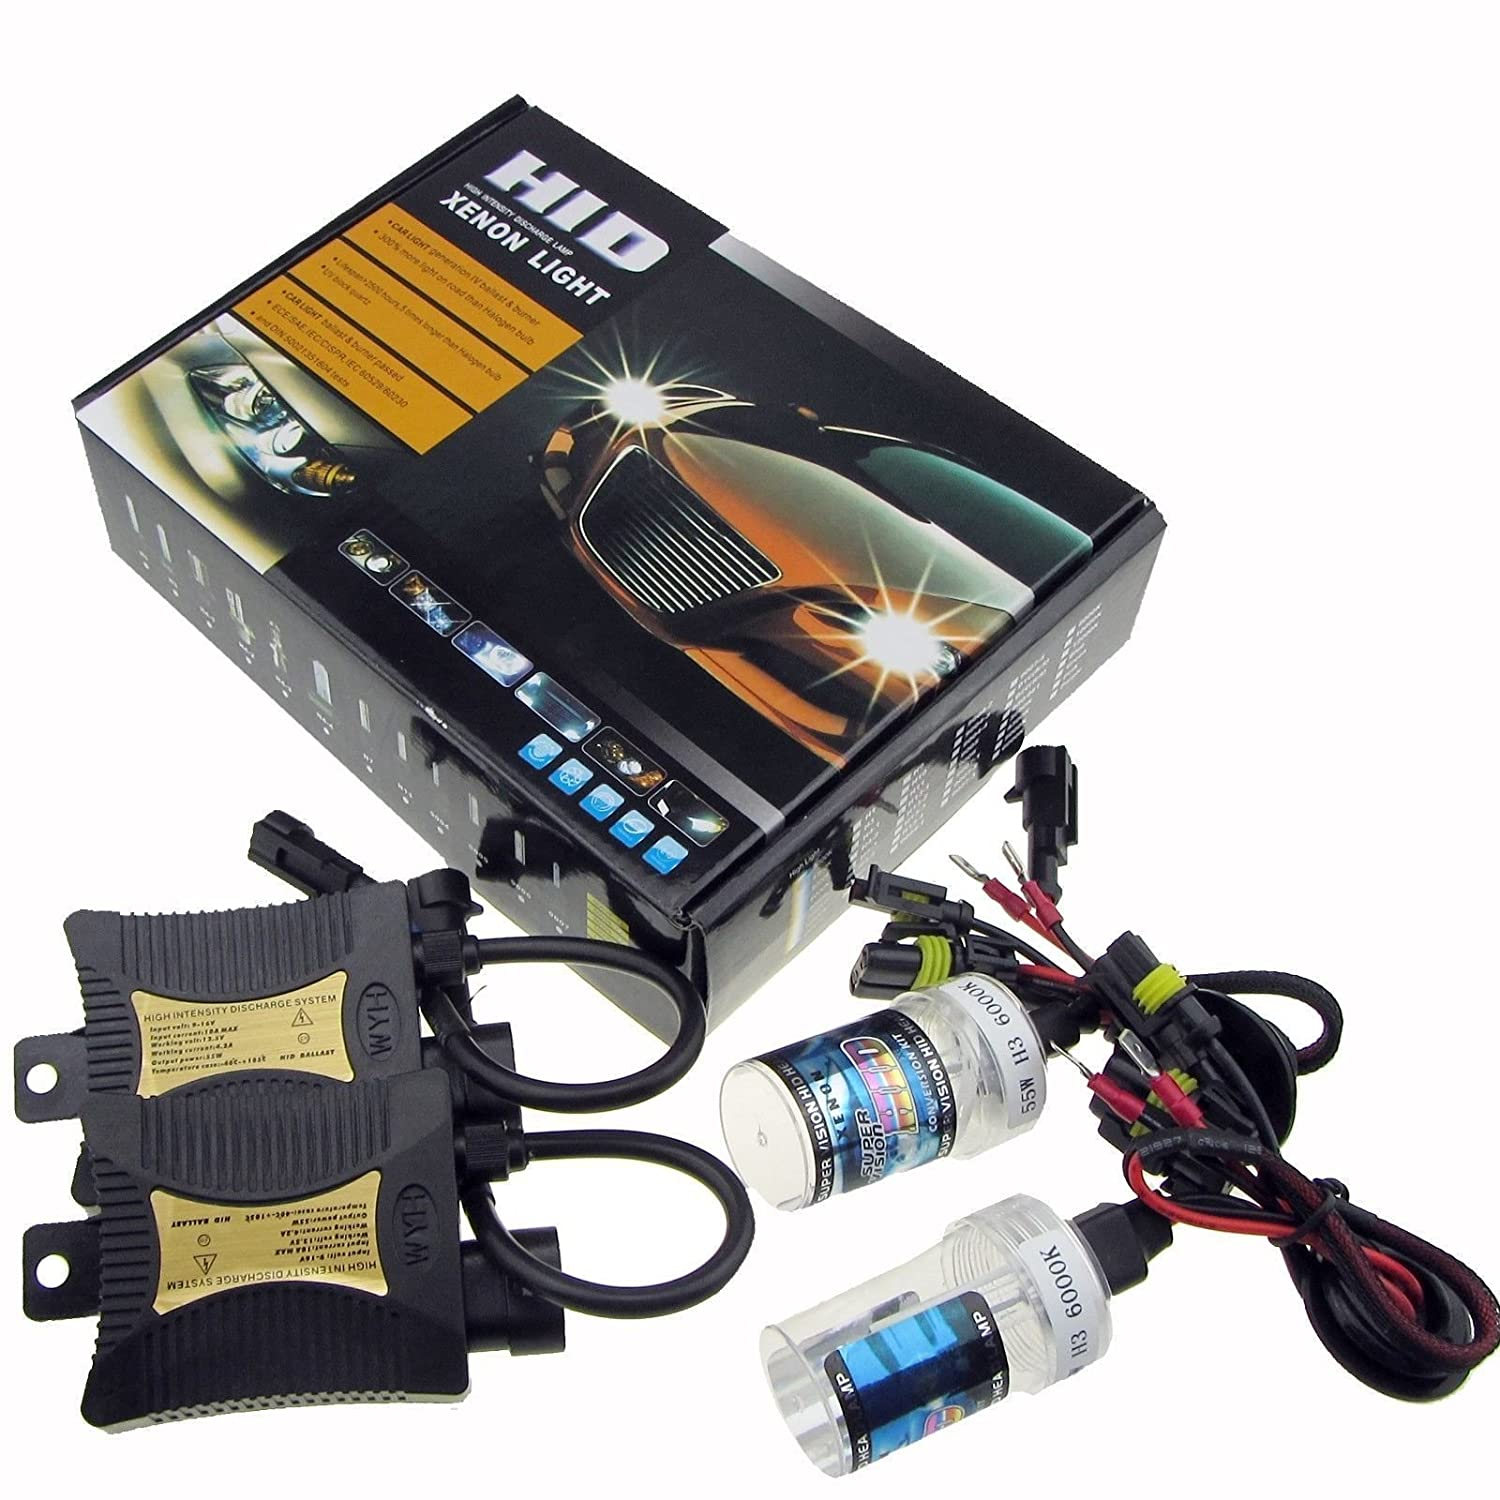 JINYJIA 12V 55W Xenon HID Conversion Kit Headlight for Car Vehicle Replacement Bulb, H7/6000K SHENZHEN JINYJIA ELECTRONICS TECHNOLOGY CO. LTD.